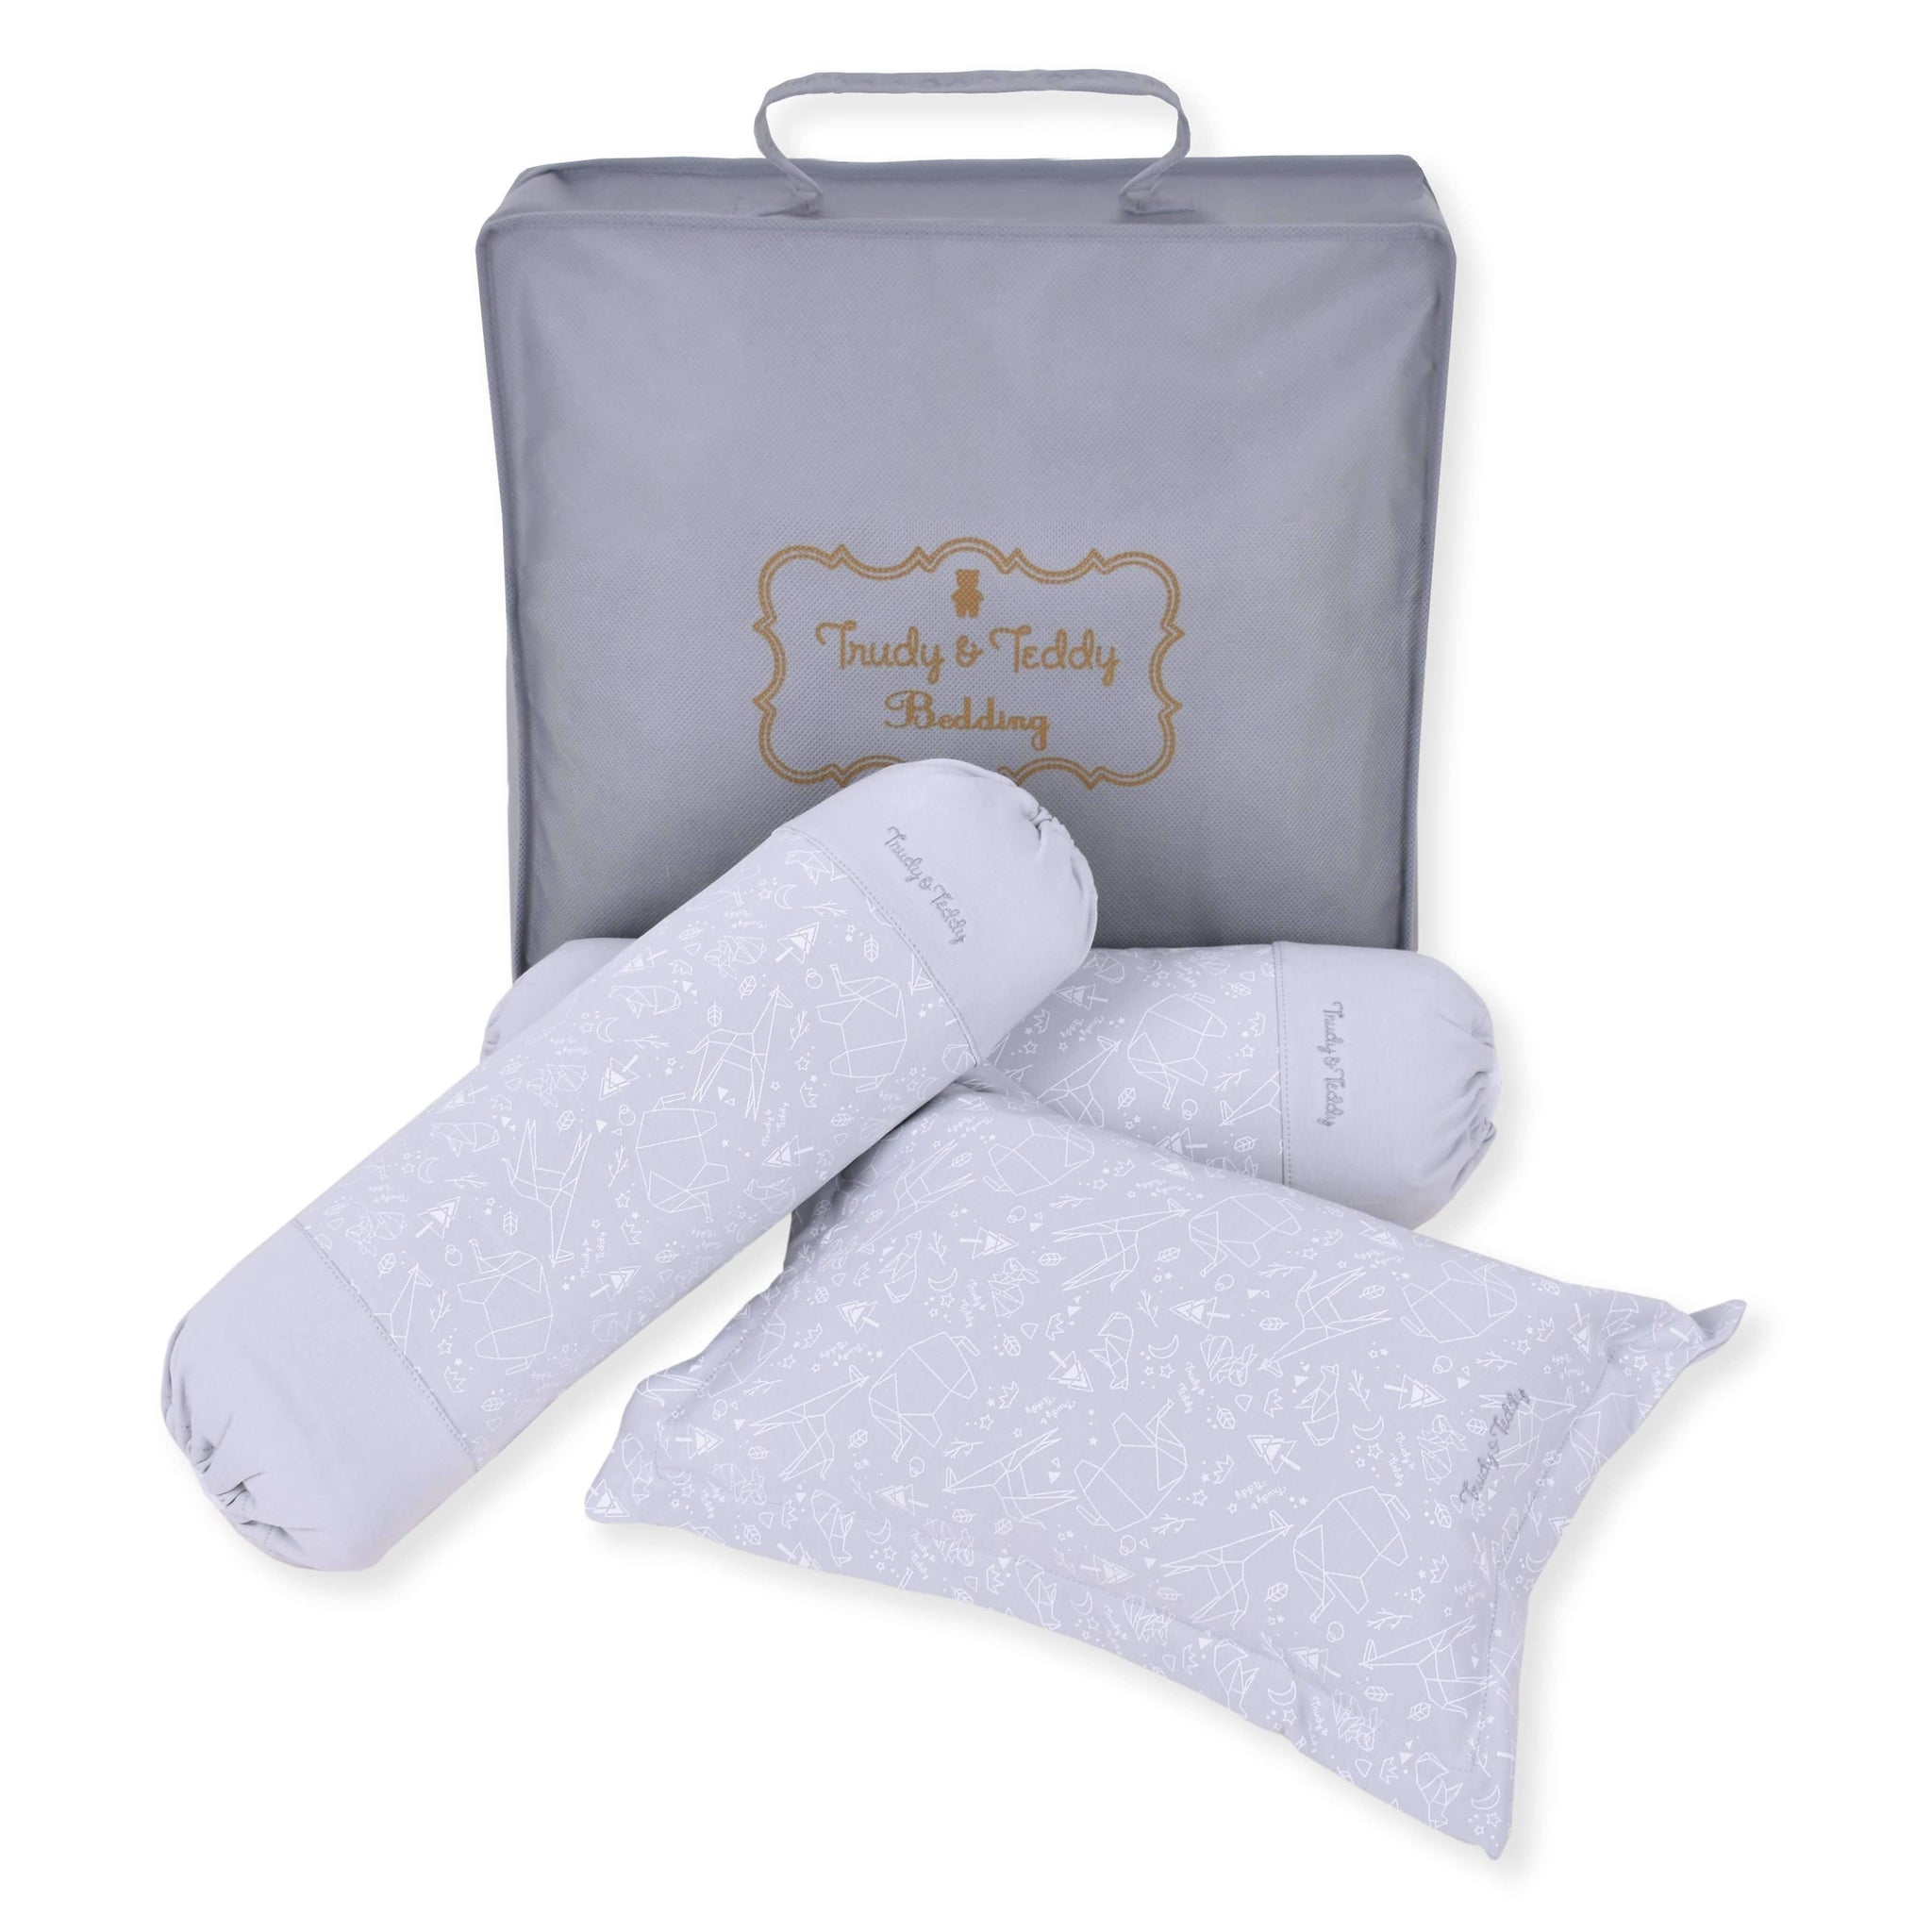 Trudy & Teddy Pillow and Bolster Set 8643-012 : Buy Trudy & Teddy online at CMG.MY